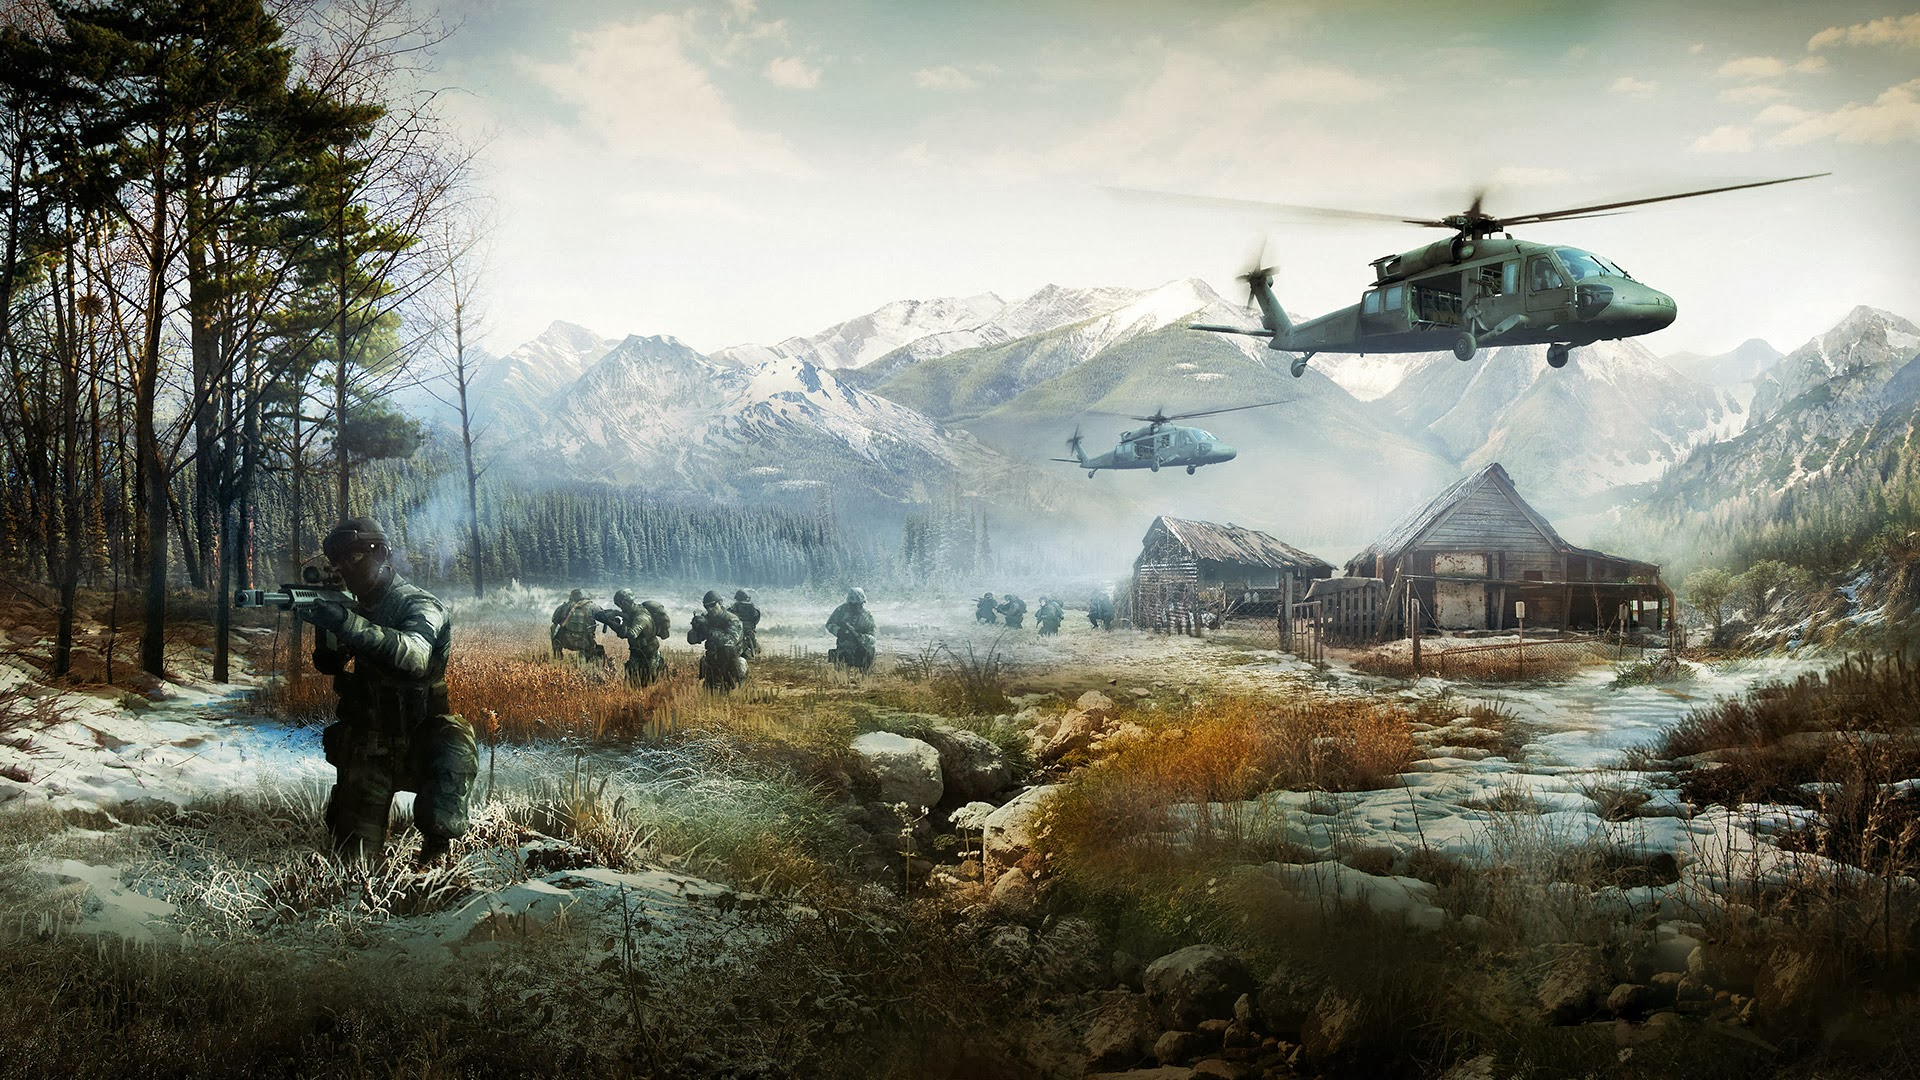 battlefield 4 game hd wallpaper helicopter soldier scenery mountains 1920x1080